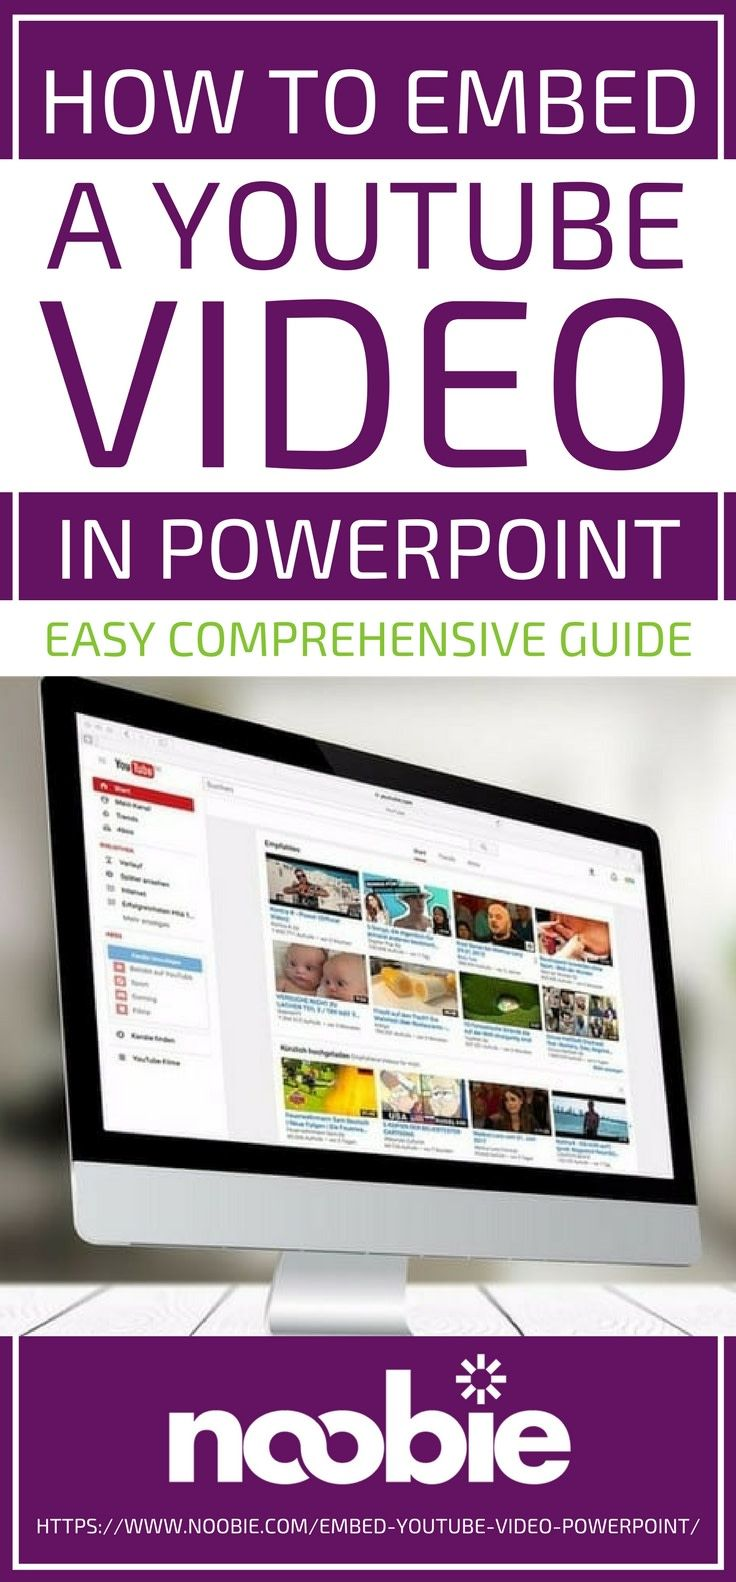 How To Embed A Youtube Video In Powerpoint Easy Comprehensive Guide How To Memorize Things Powerpoint Tips Interactive Powerpoint